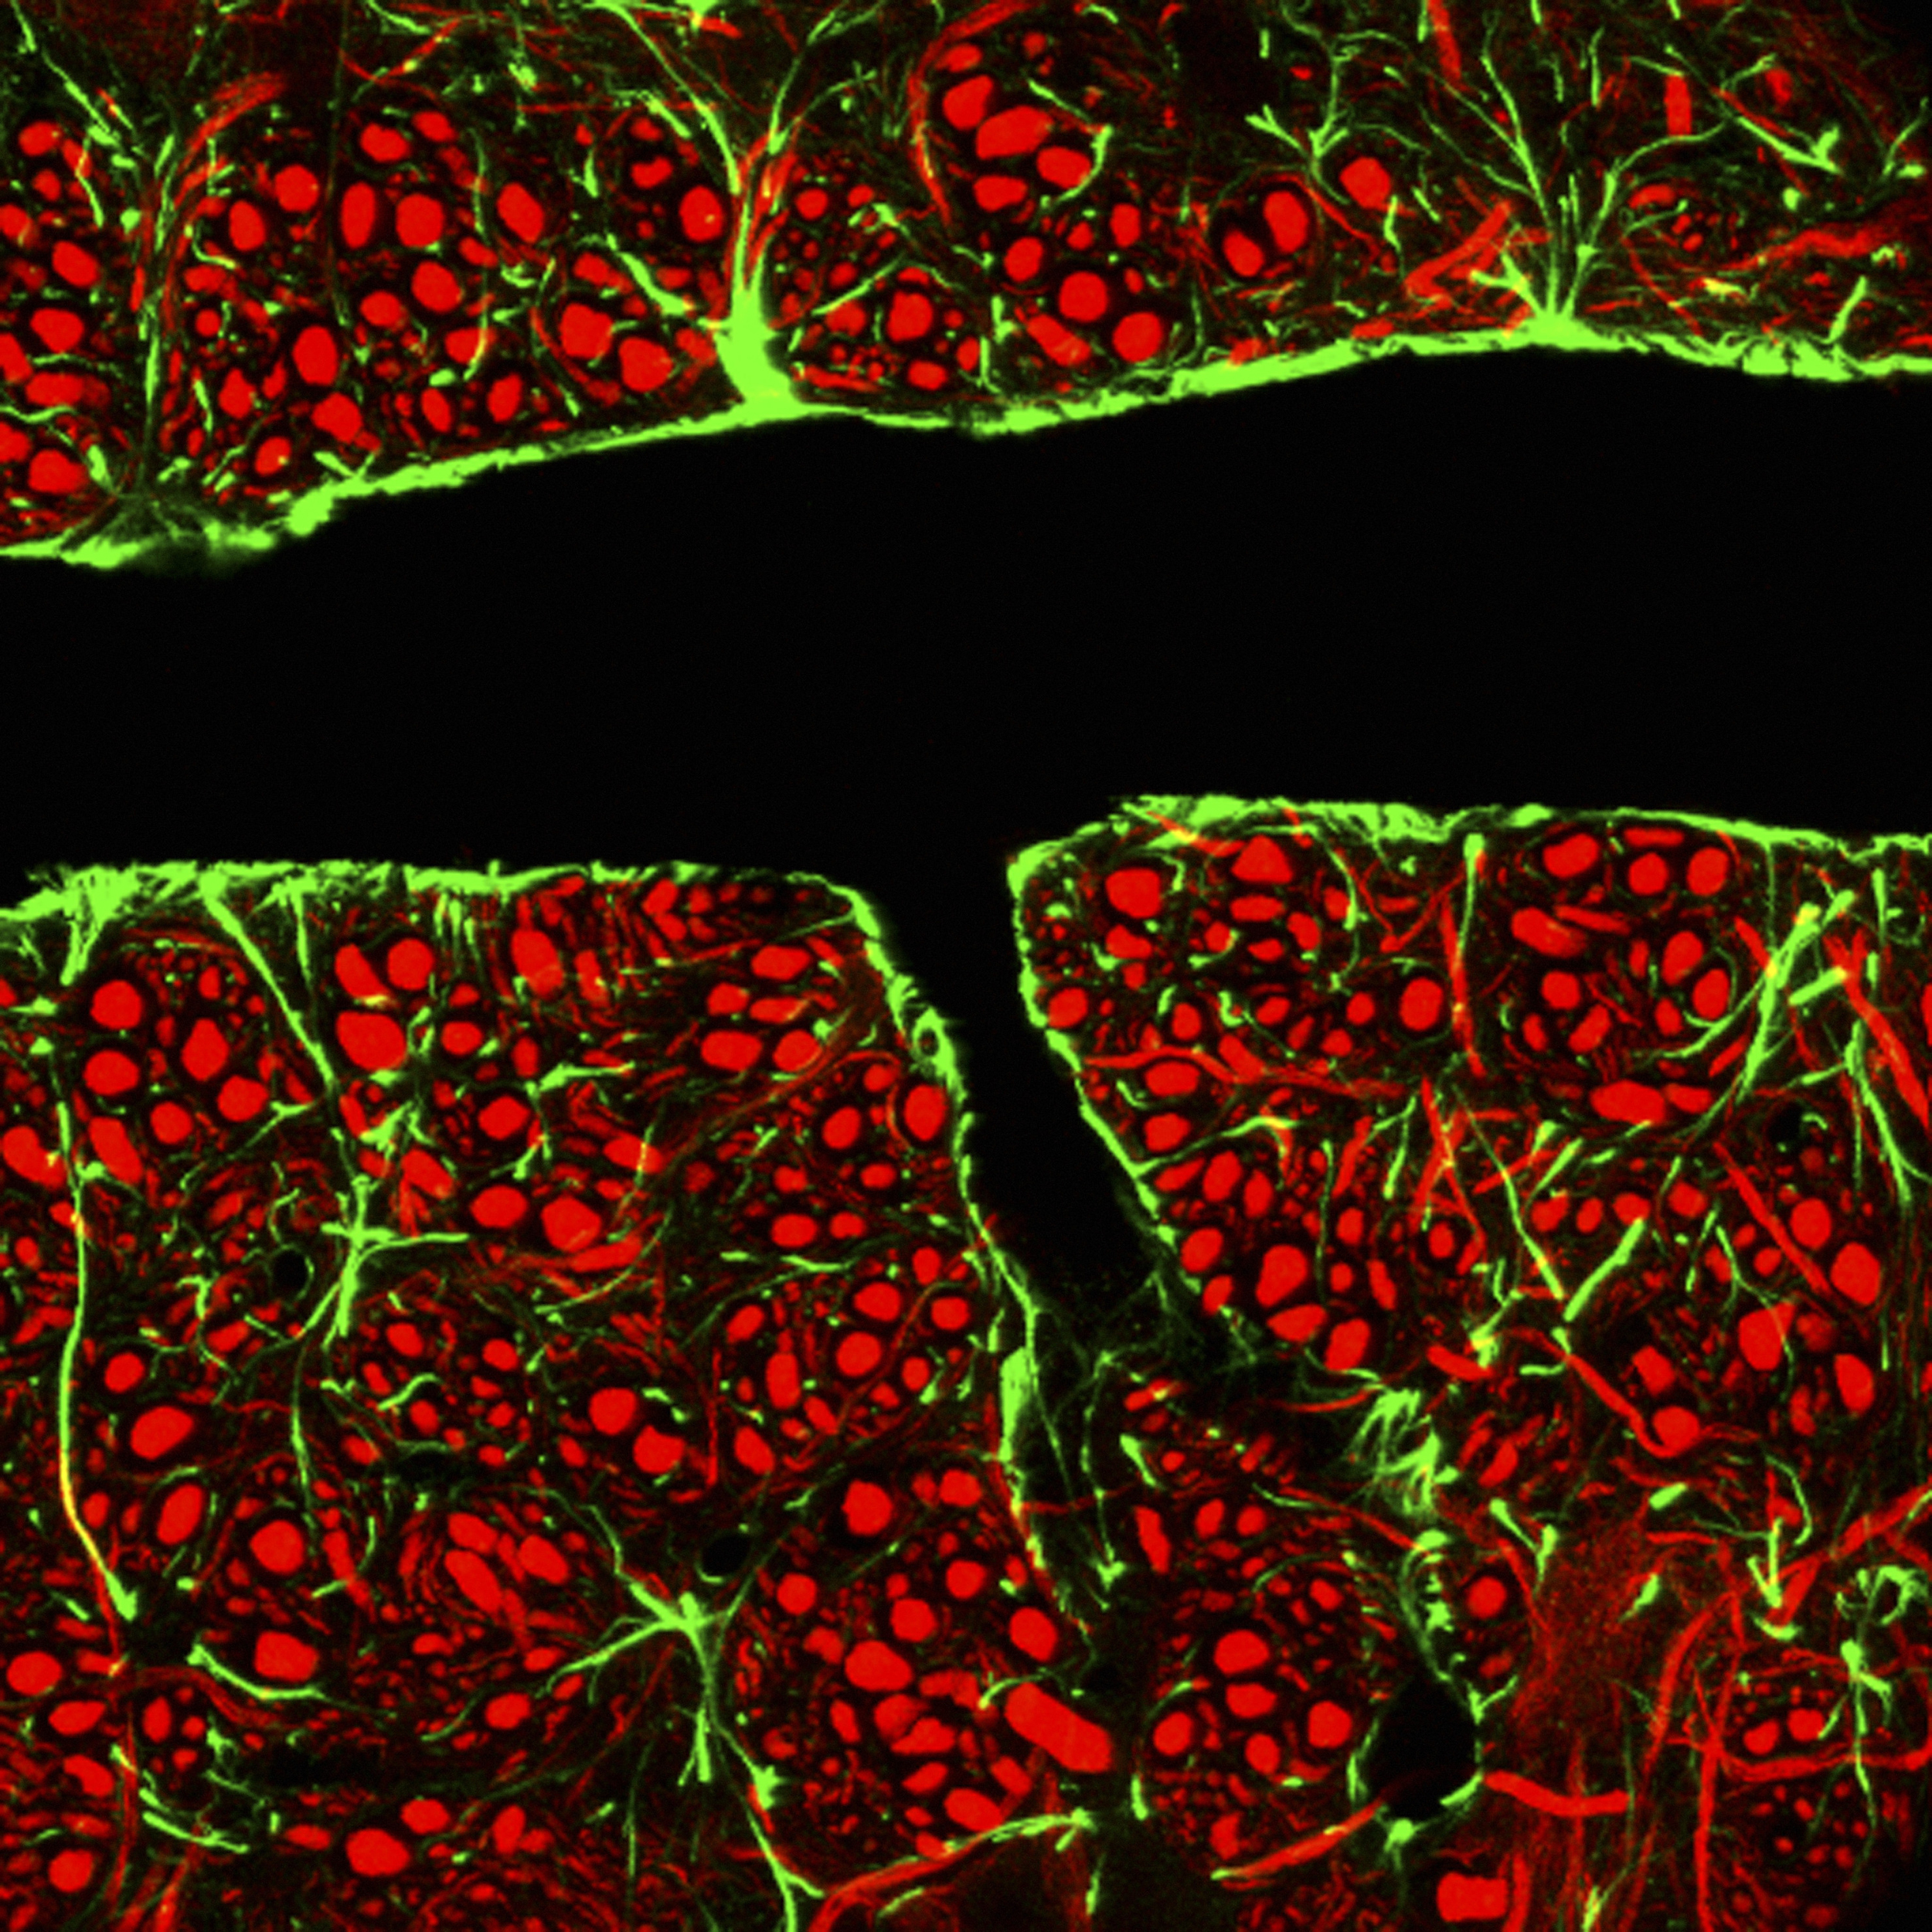 Leaky Blood Vessels In The Brain May Lead To Alzheimer's